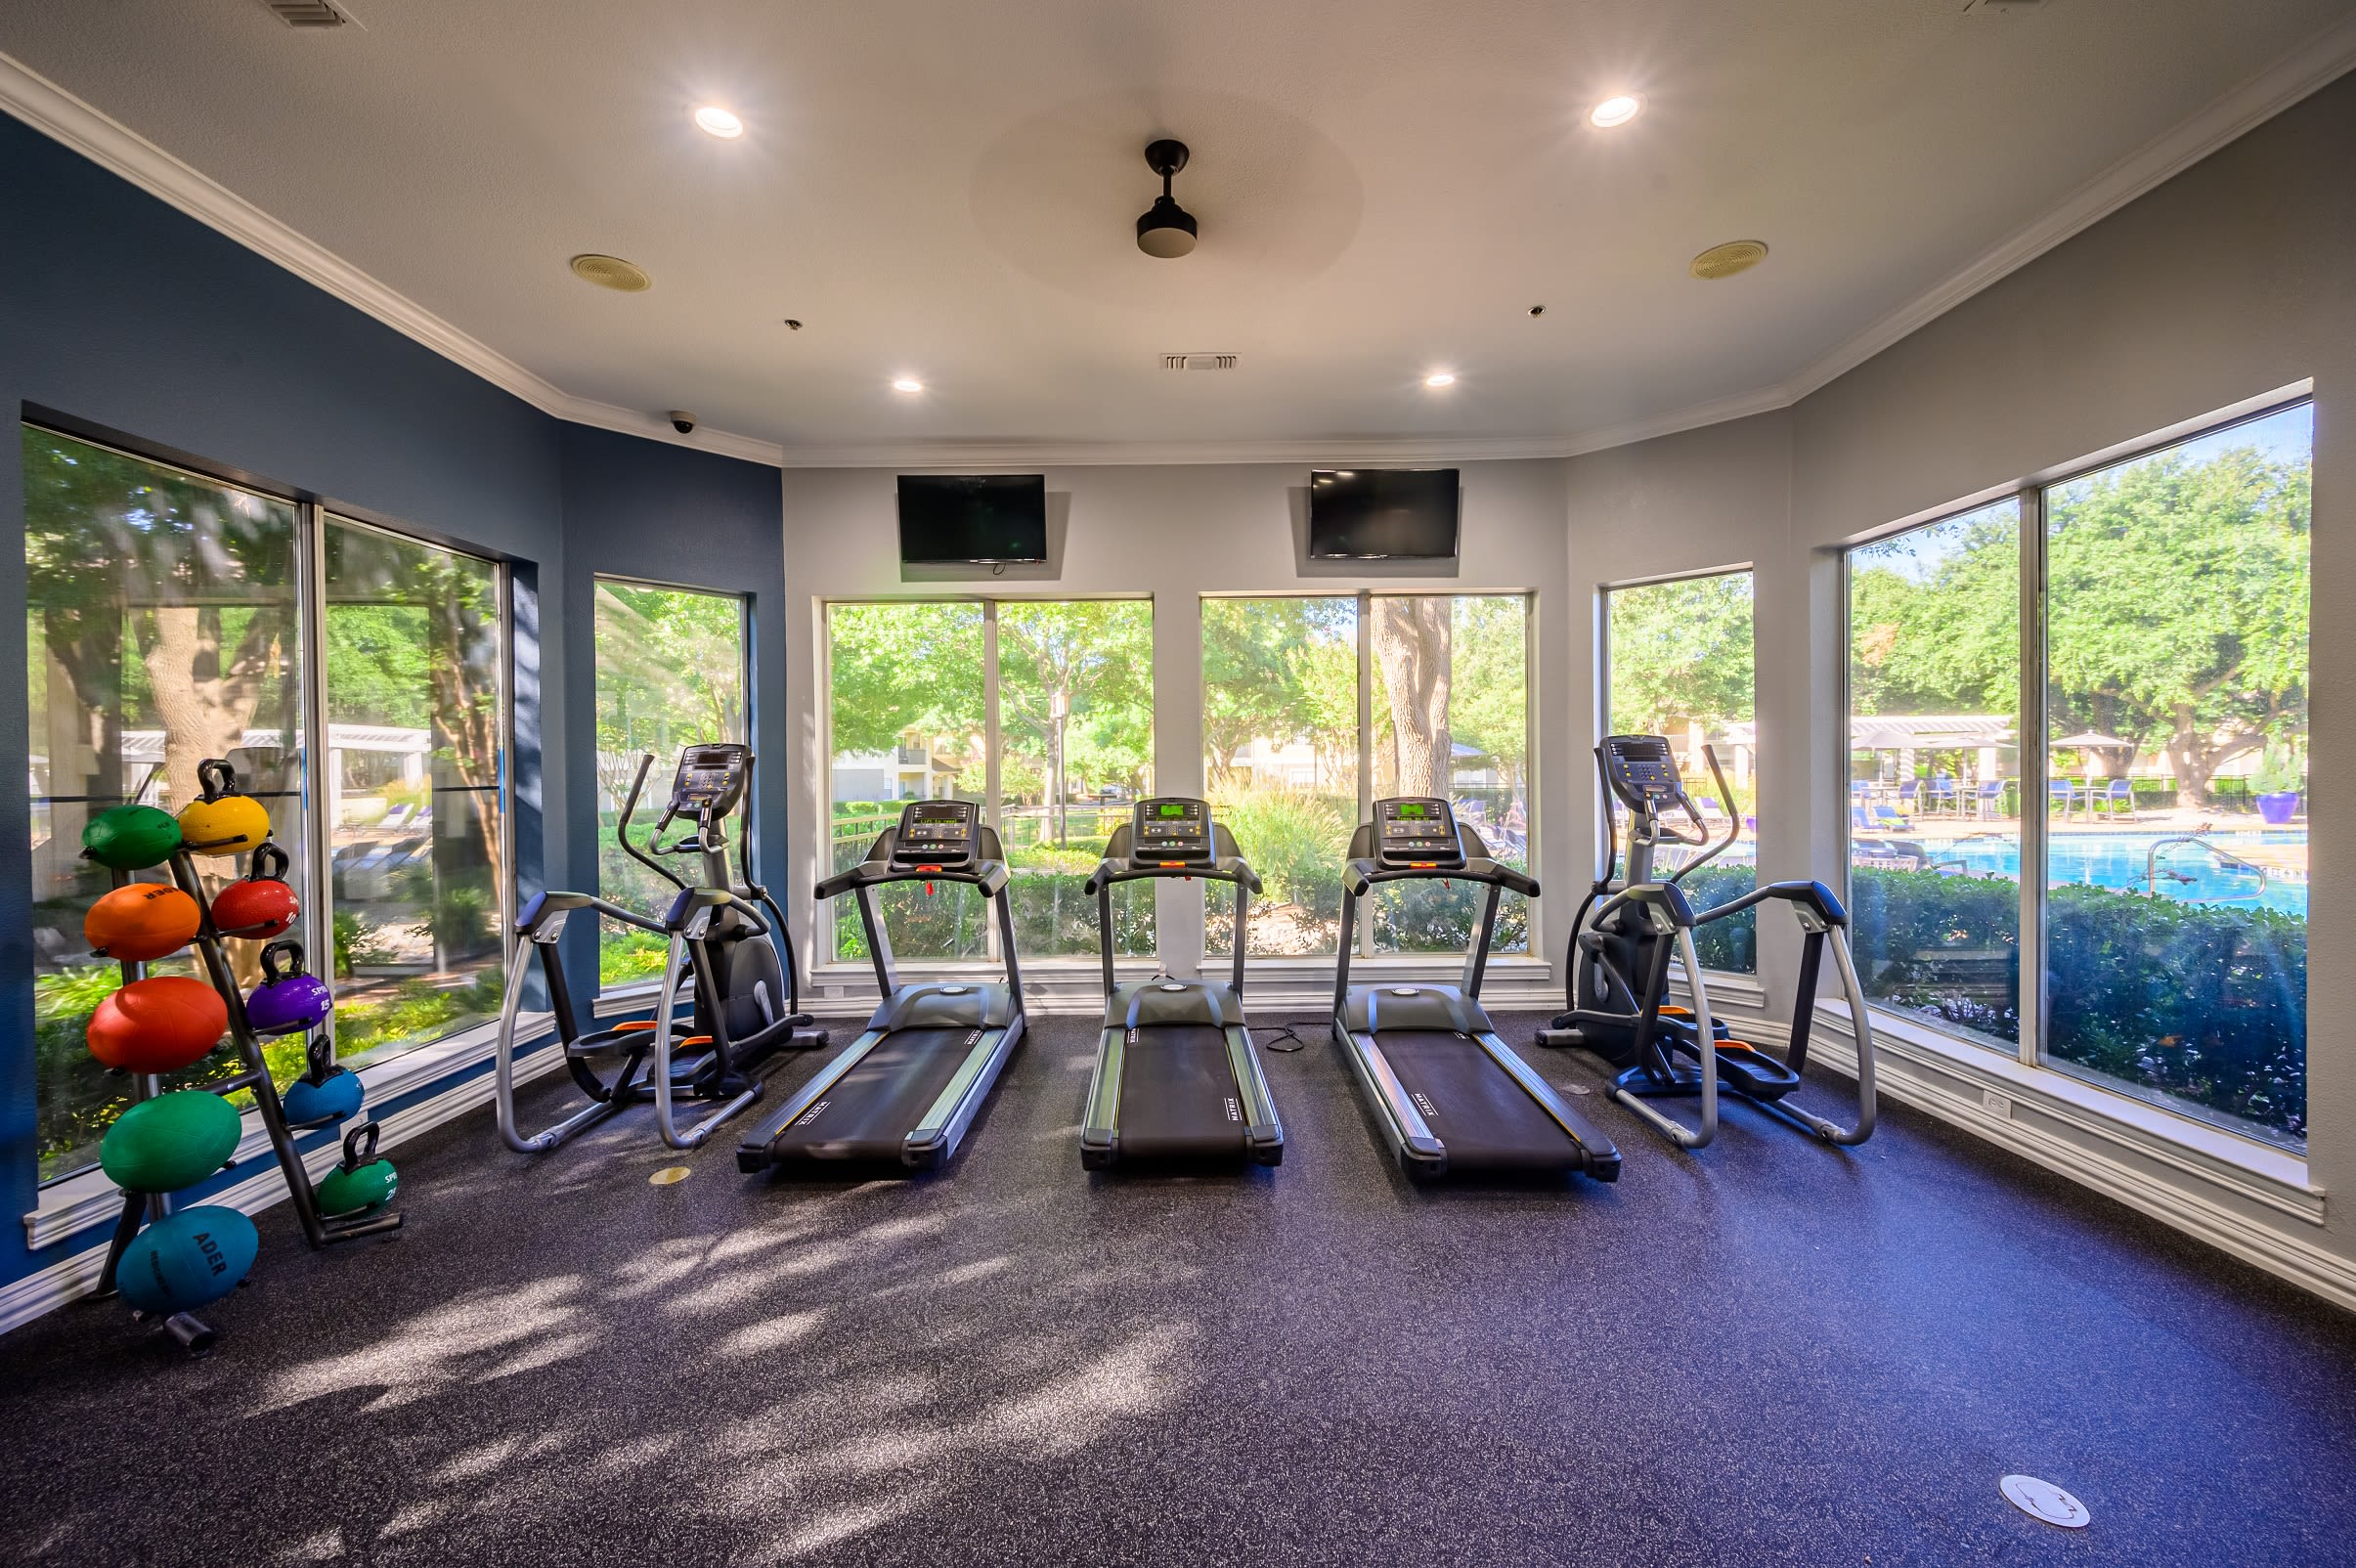 Enjoy the fitness center at 23Hundred at Ridgeview in Plano, Texas